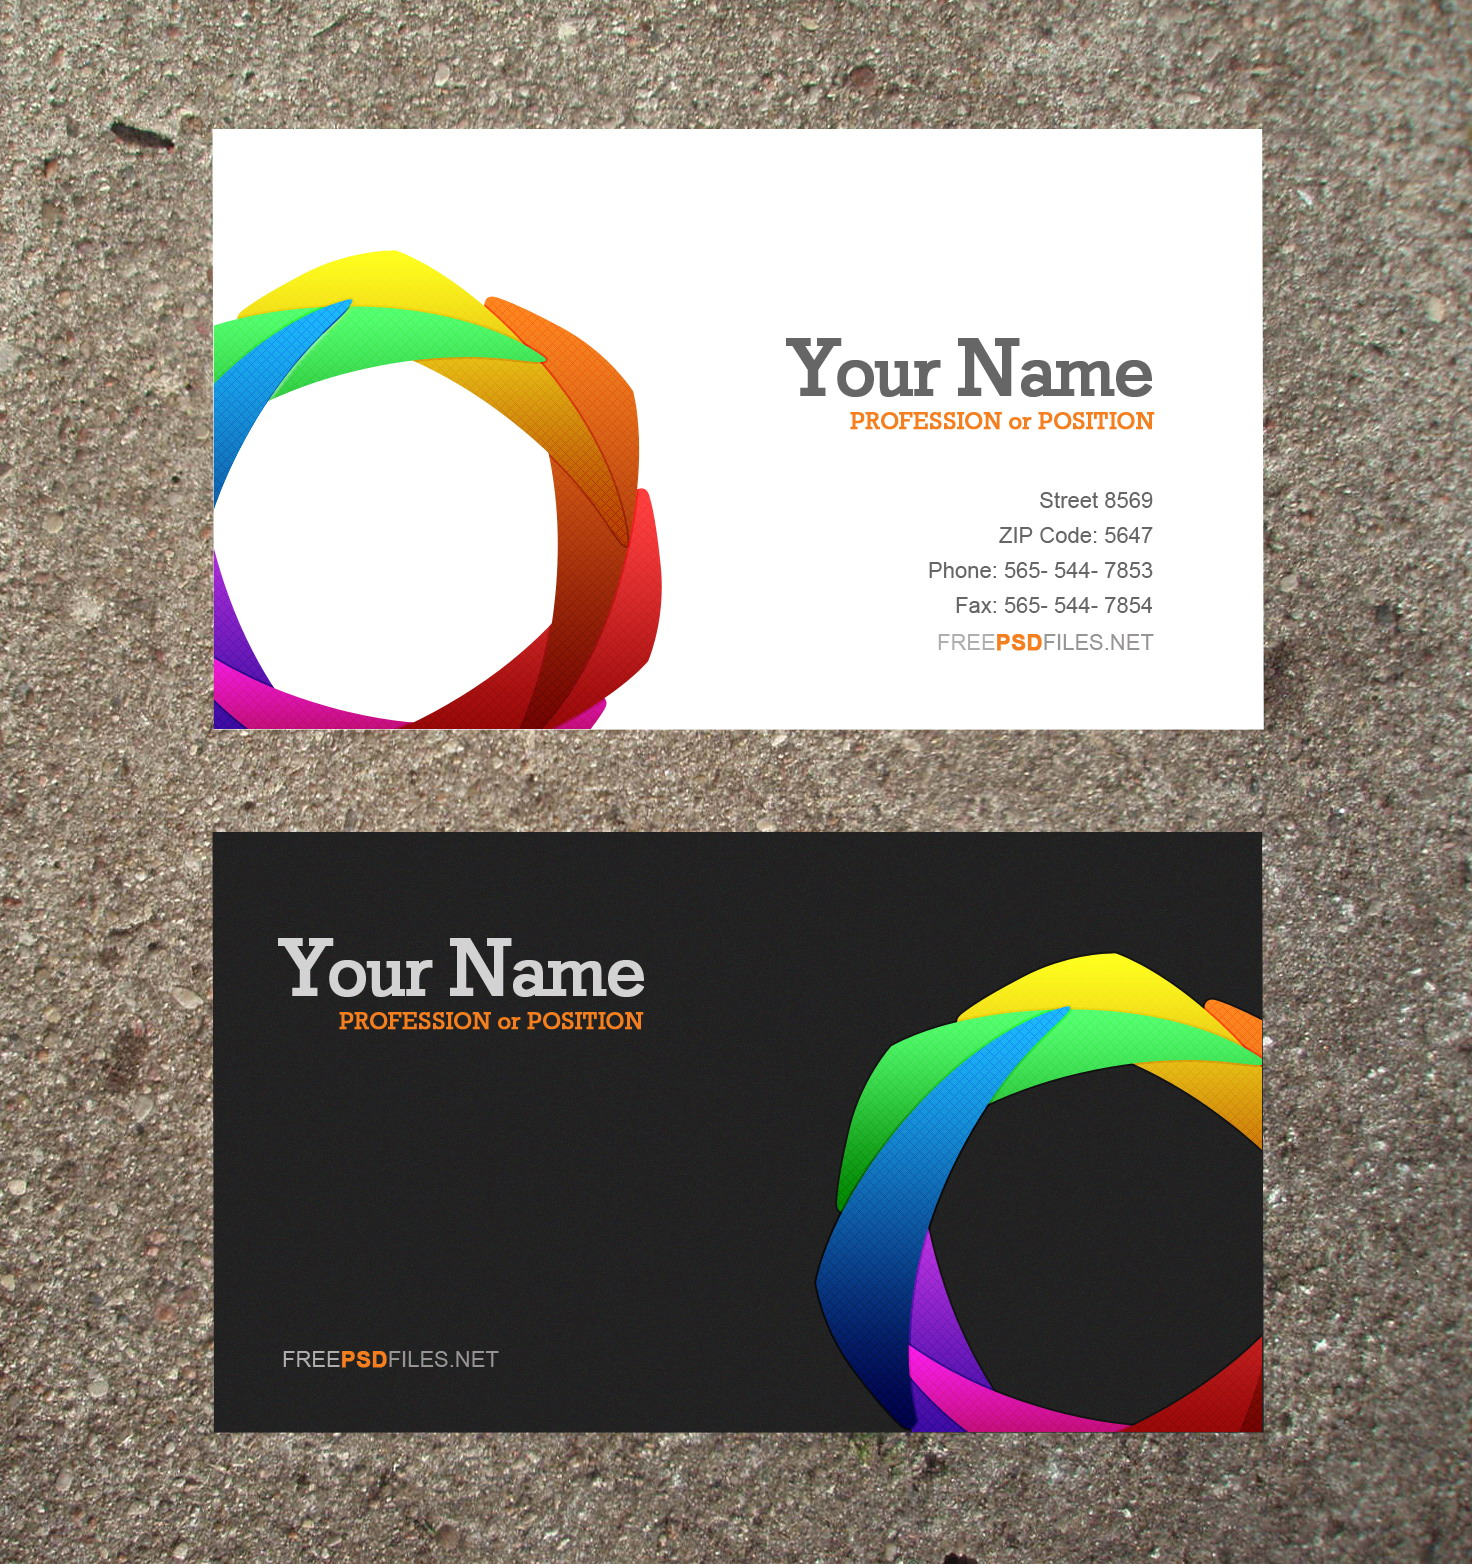 20 free psd business card templates images free business for Template of business card